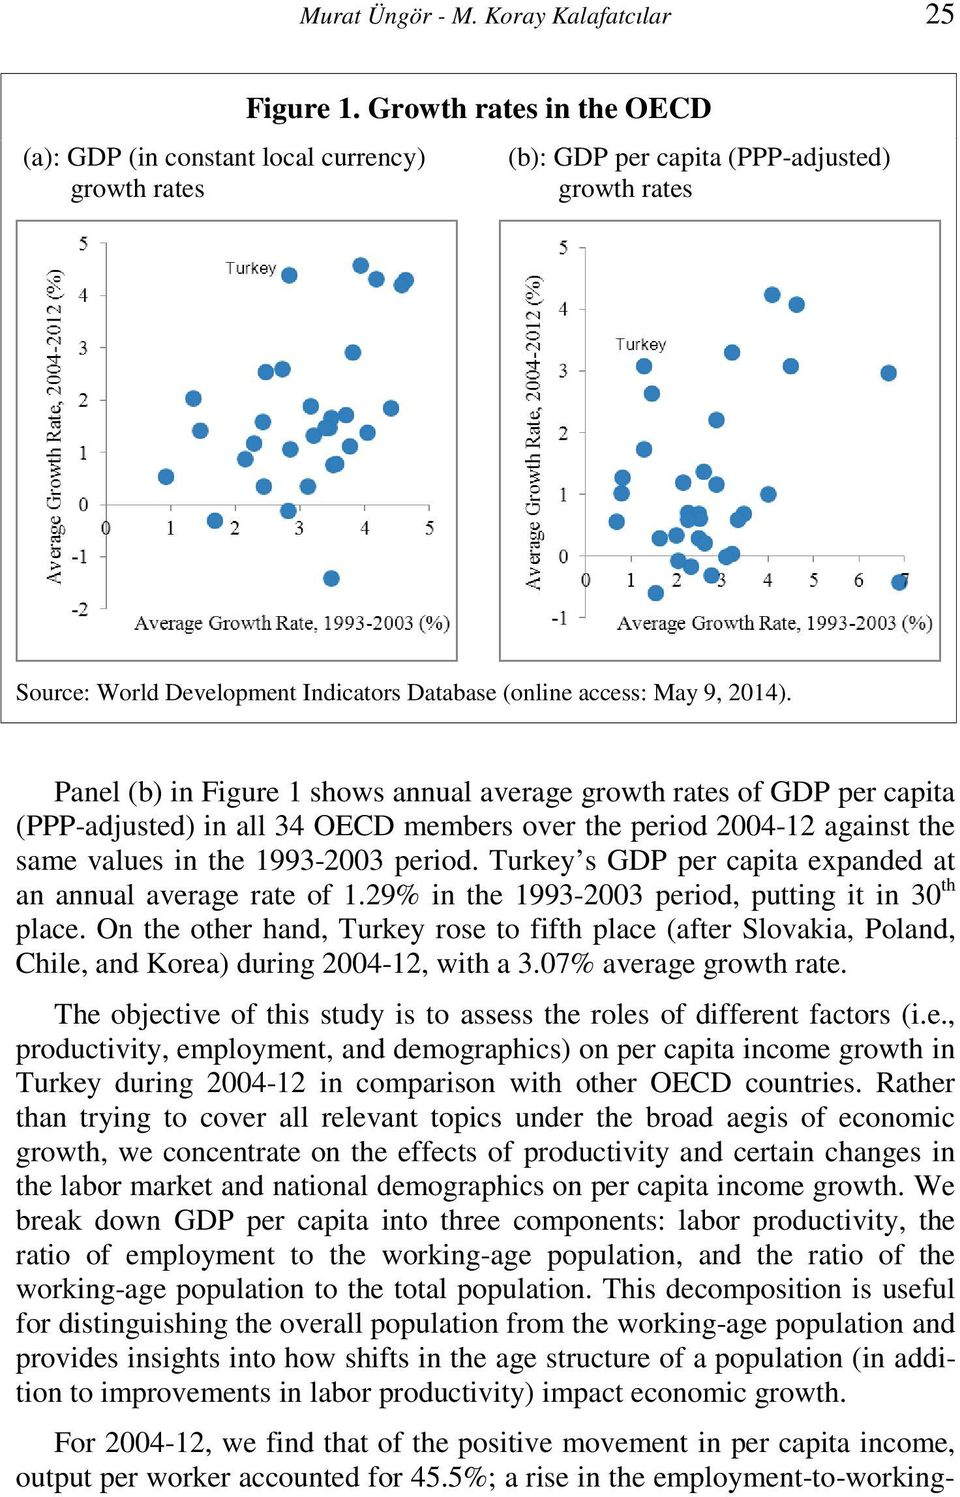 Panel (b) in Figure 1 shows annual average growth rates of GDP per capita (PPP-adjusted) in all 34 OECD members over the period 2004-12 against the same values in the 1993-2003 period.